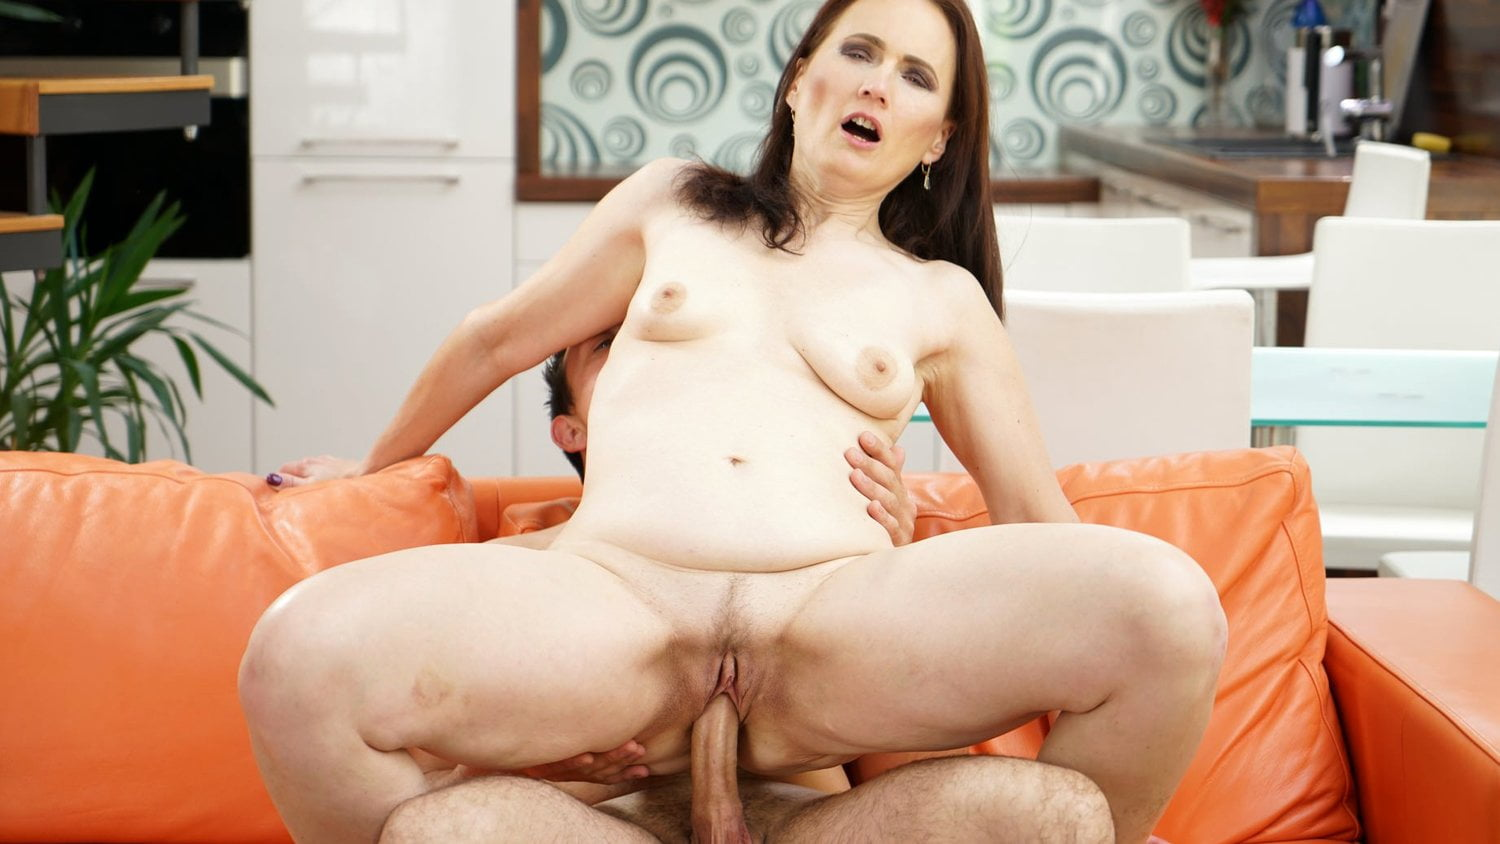 Big Ass Granny Takes Young Dick, Free Hd Porn 71 Xhamster-9136